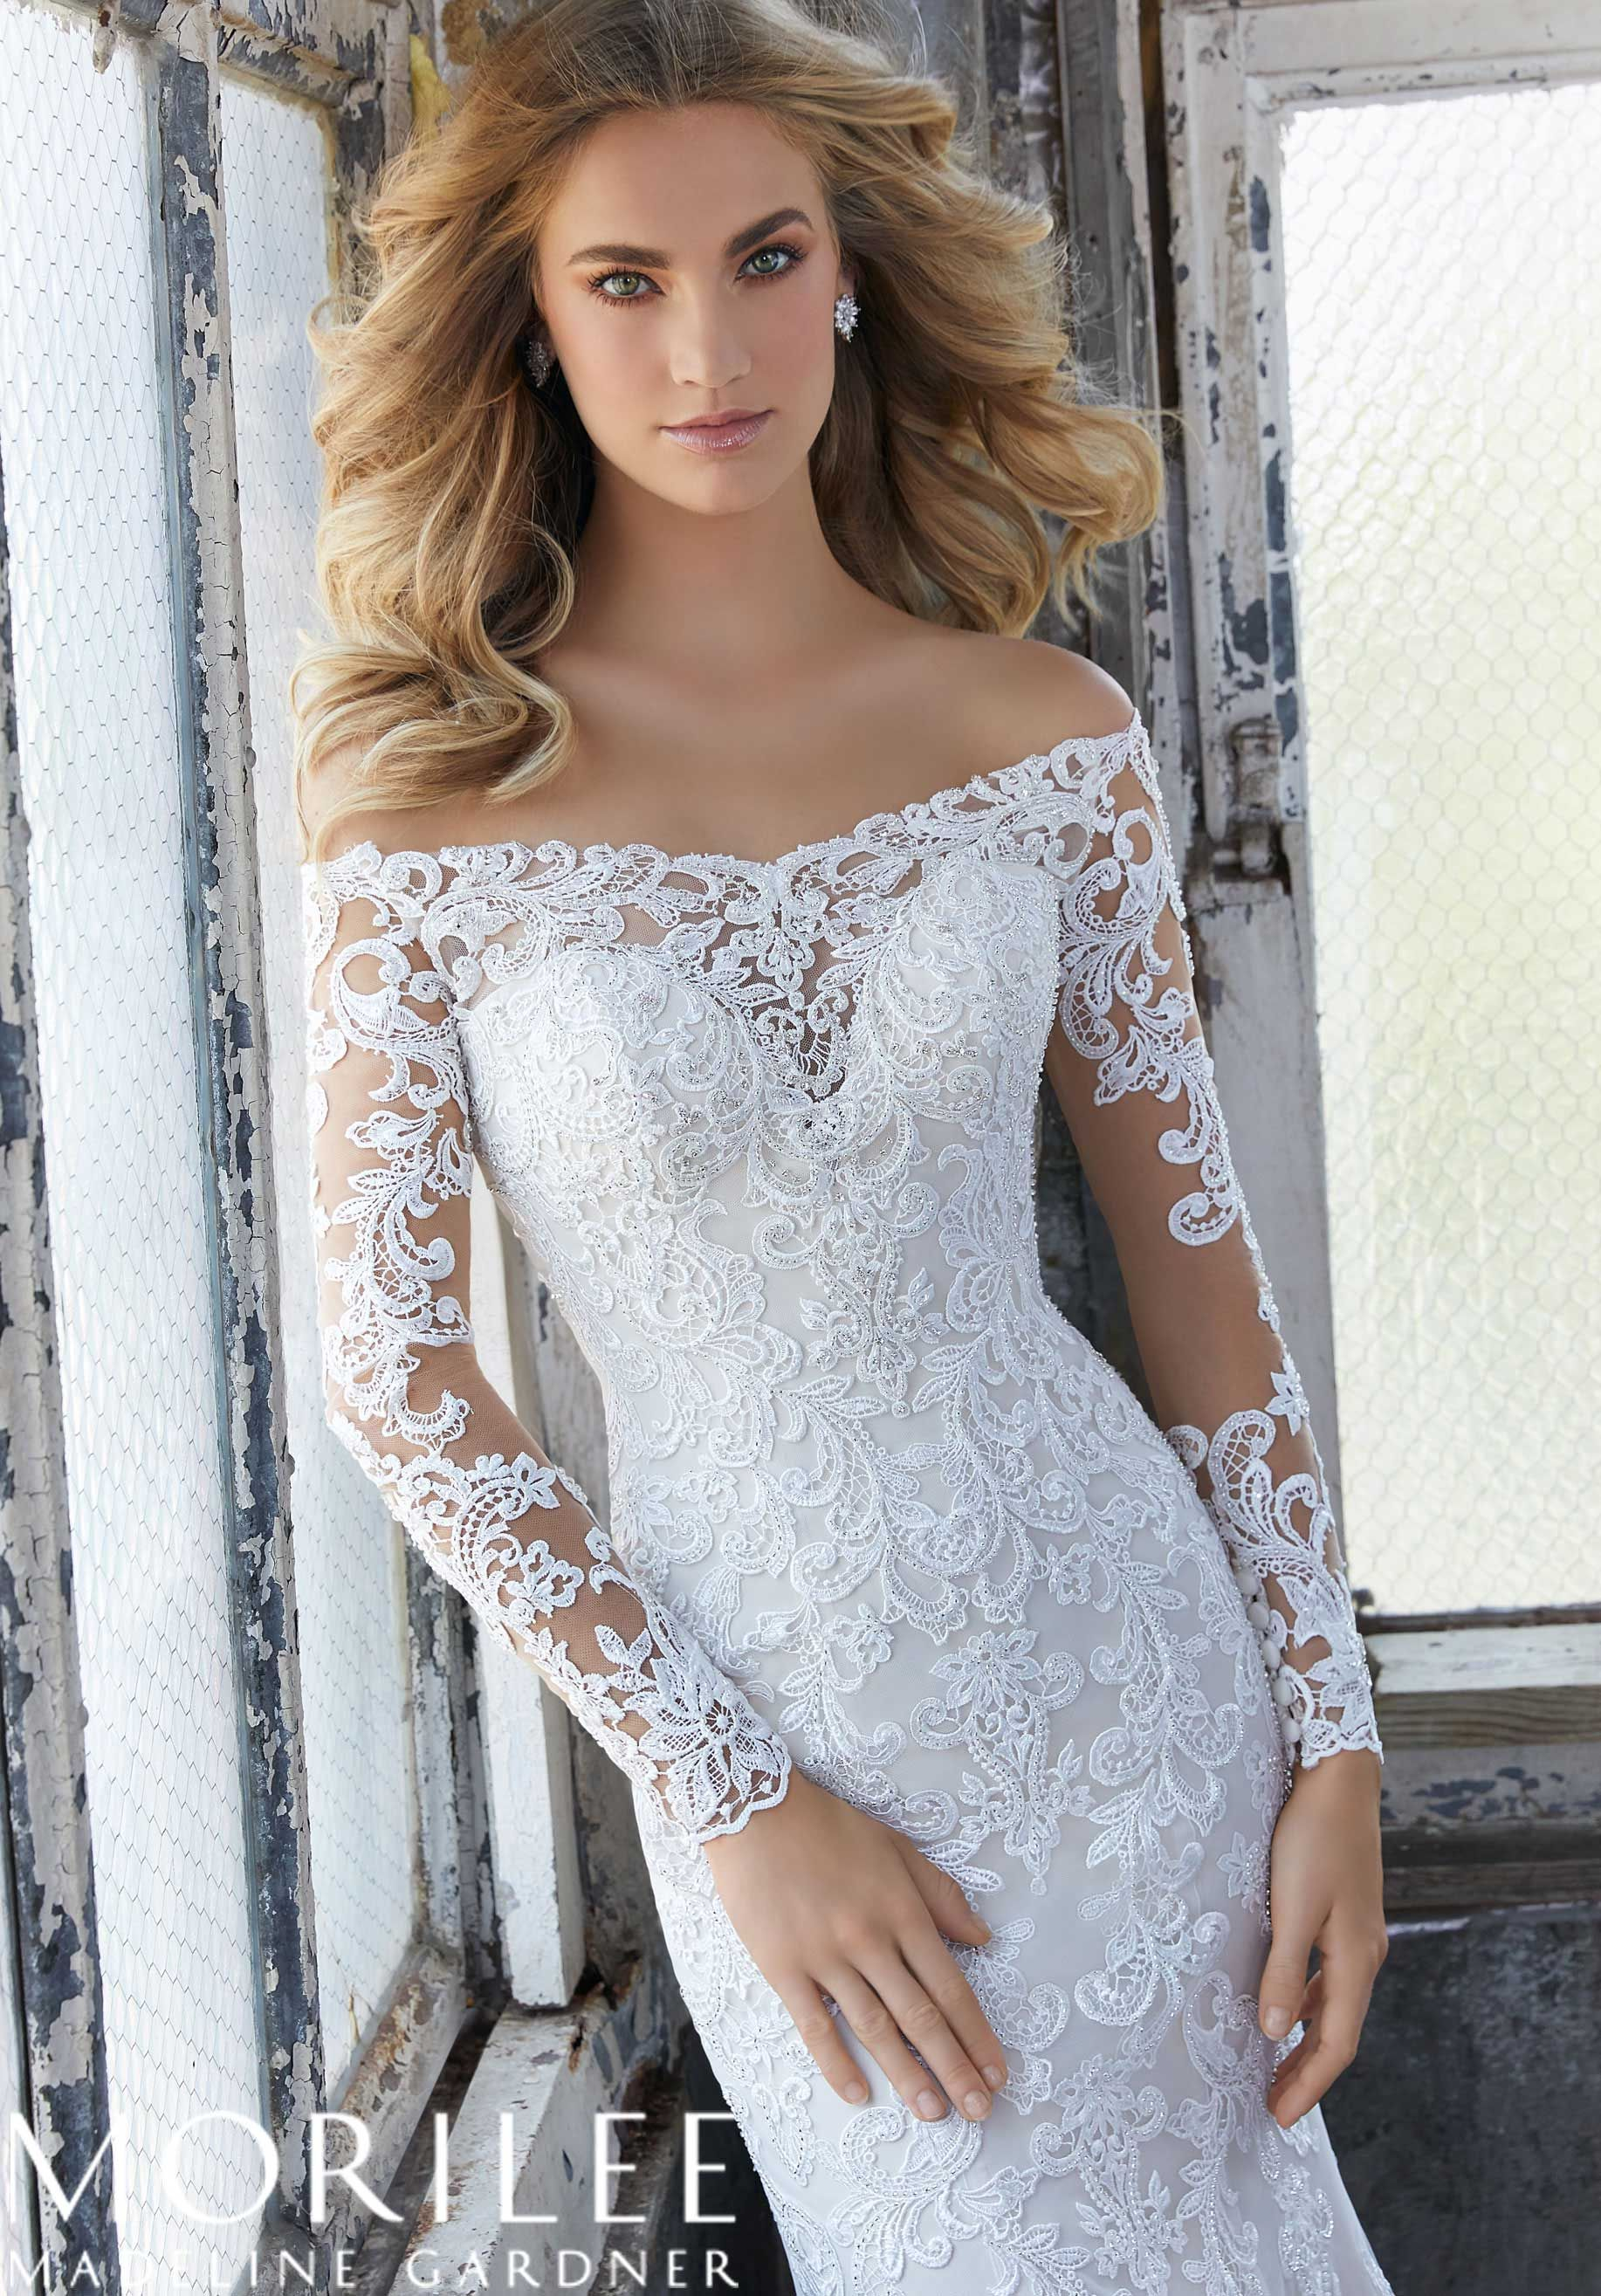 Mori lee madeline gardner wedding dress  Morilee  Madeline Gardner Karlee Style   Elegant Fit and